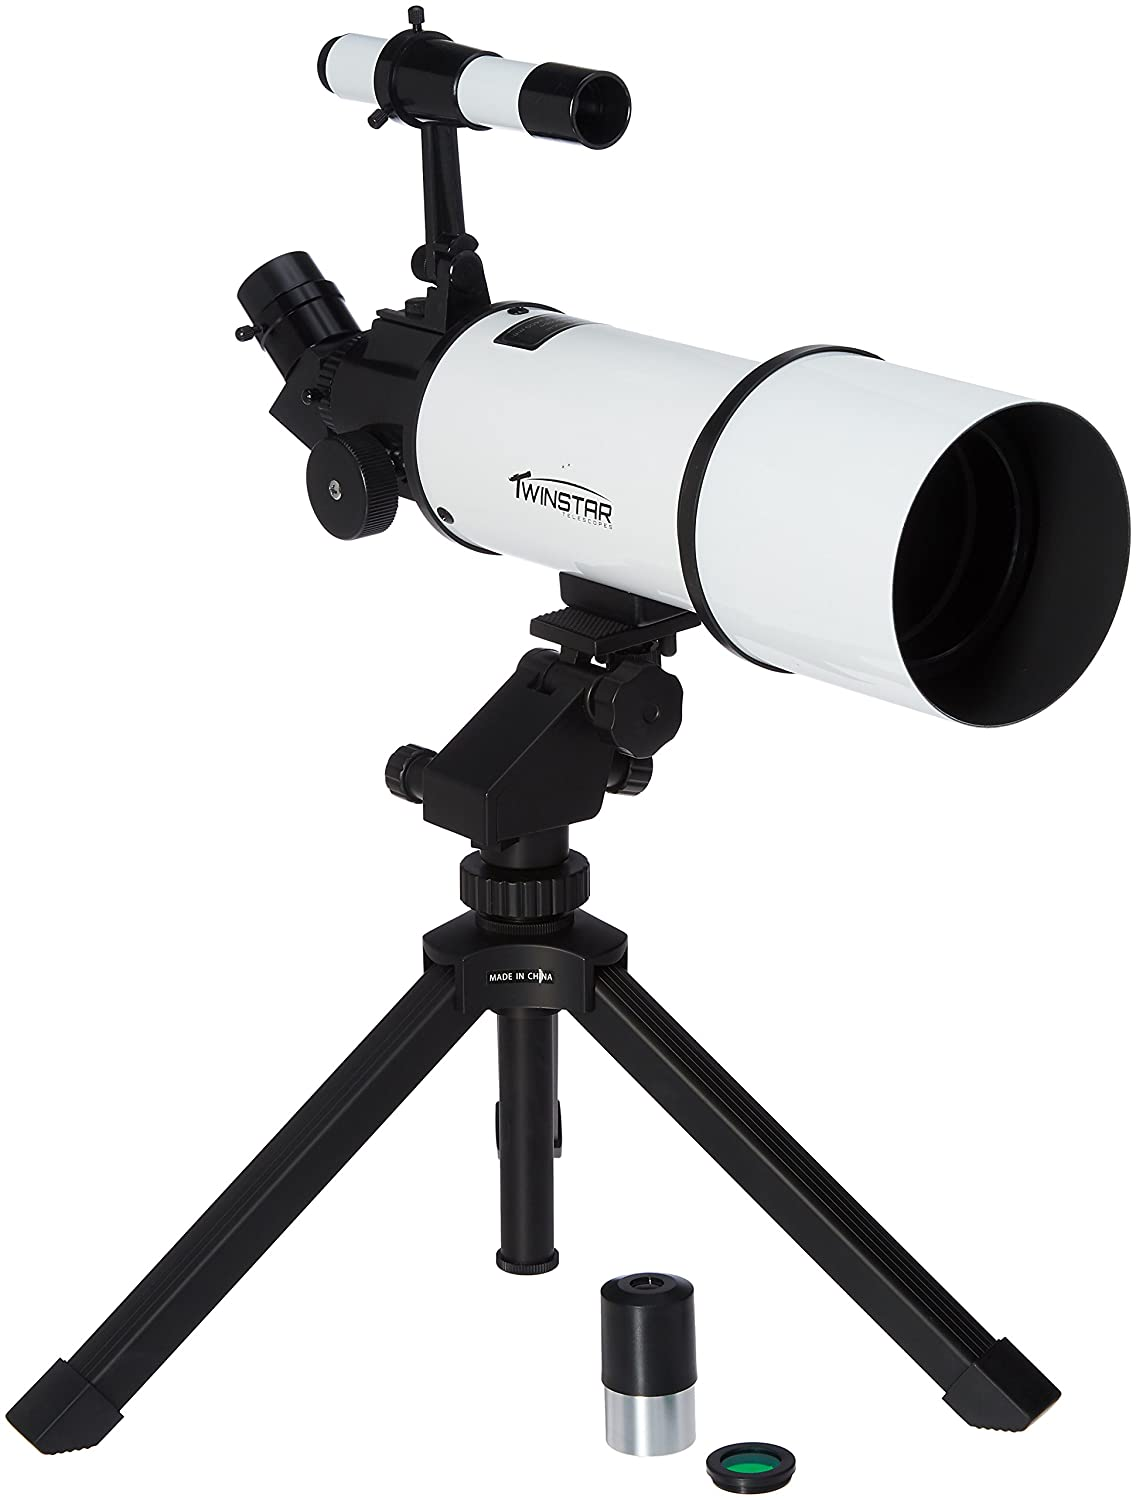 Silver TwinStar AstroMark 80mm 16-40x Power Portable Refractor Telescope 904514